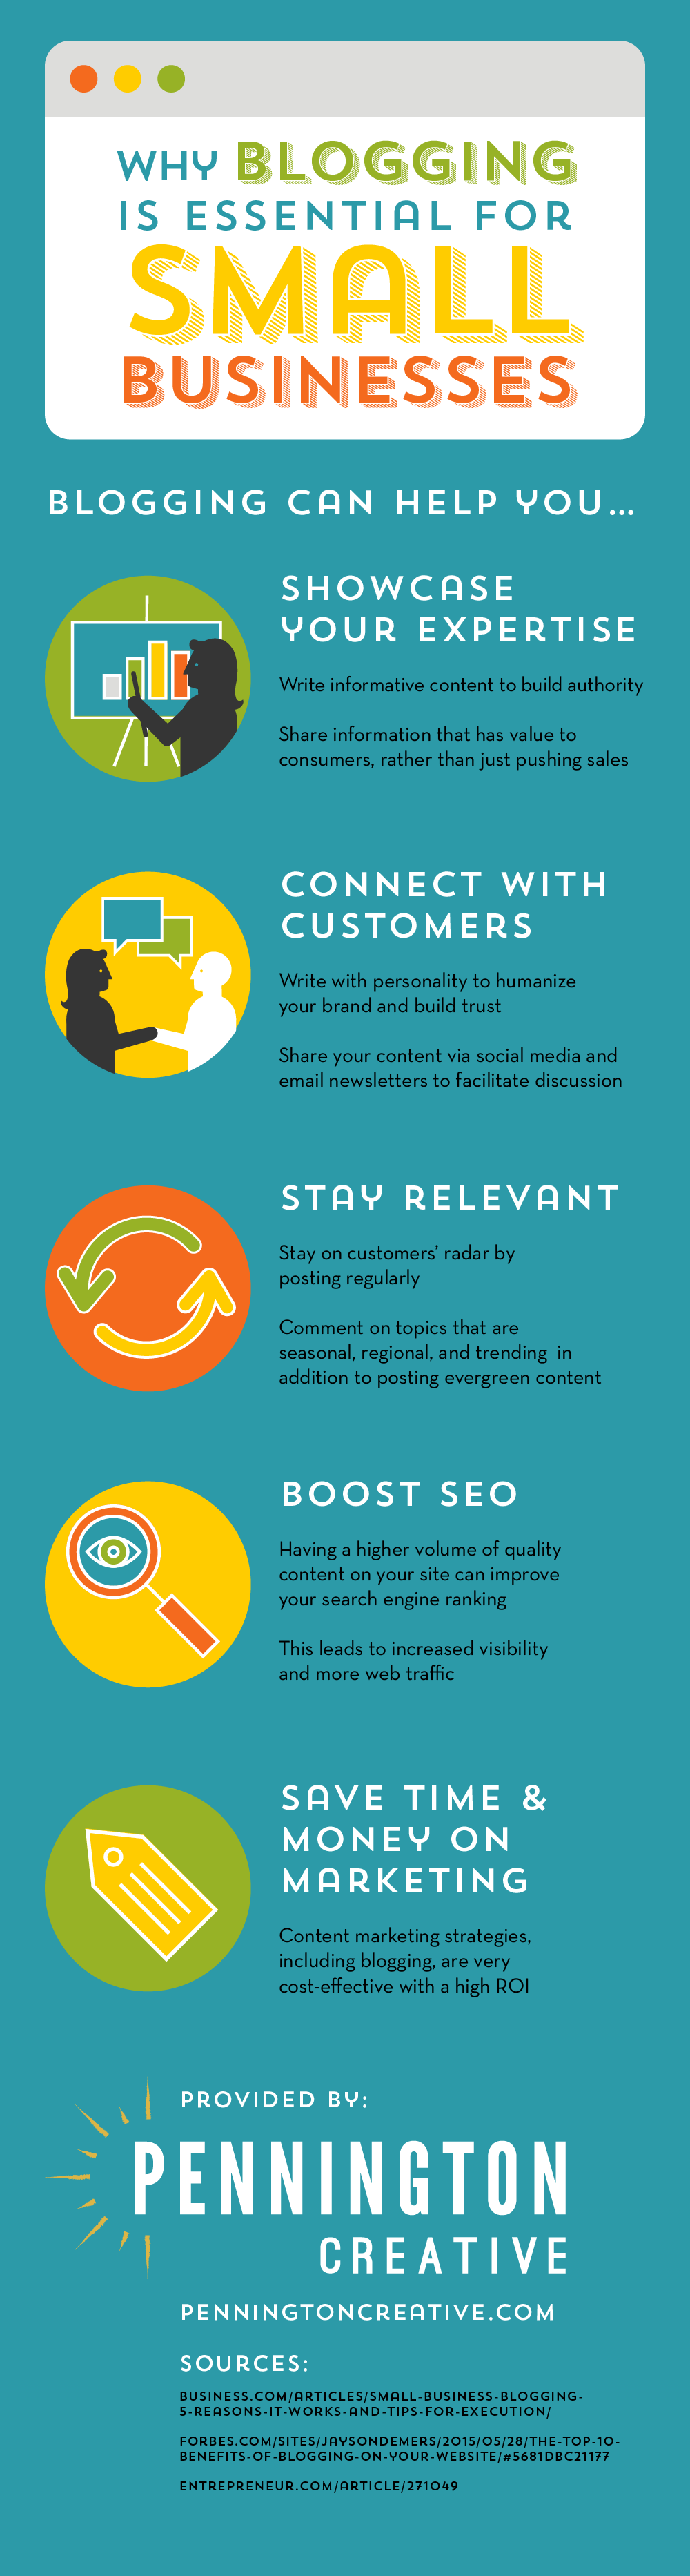 Infographic showing how blogging can help small businesses online.